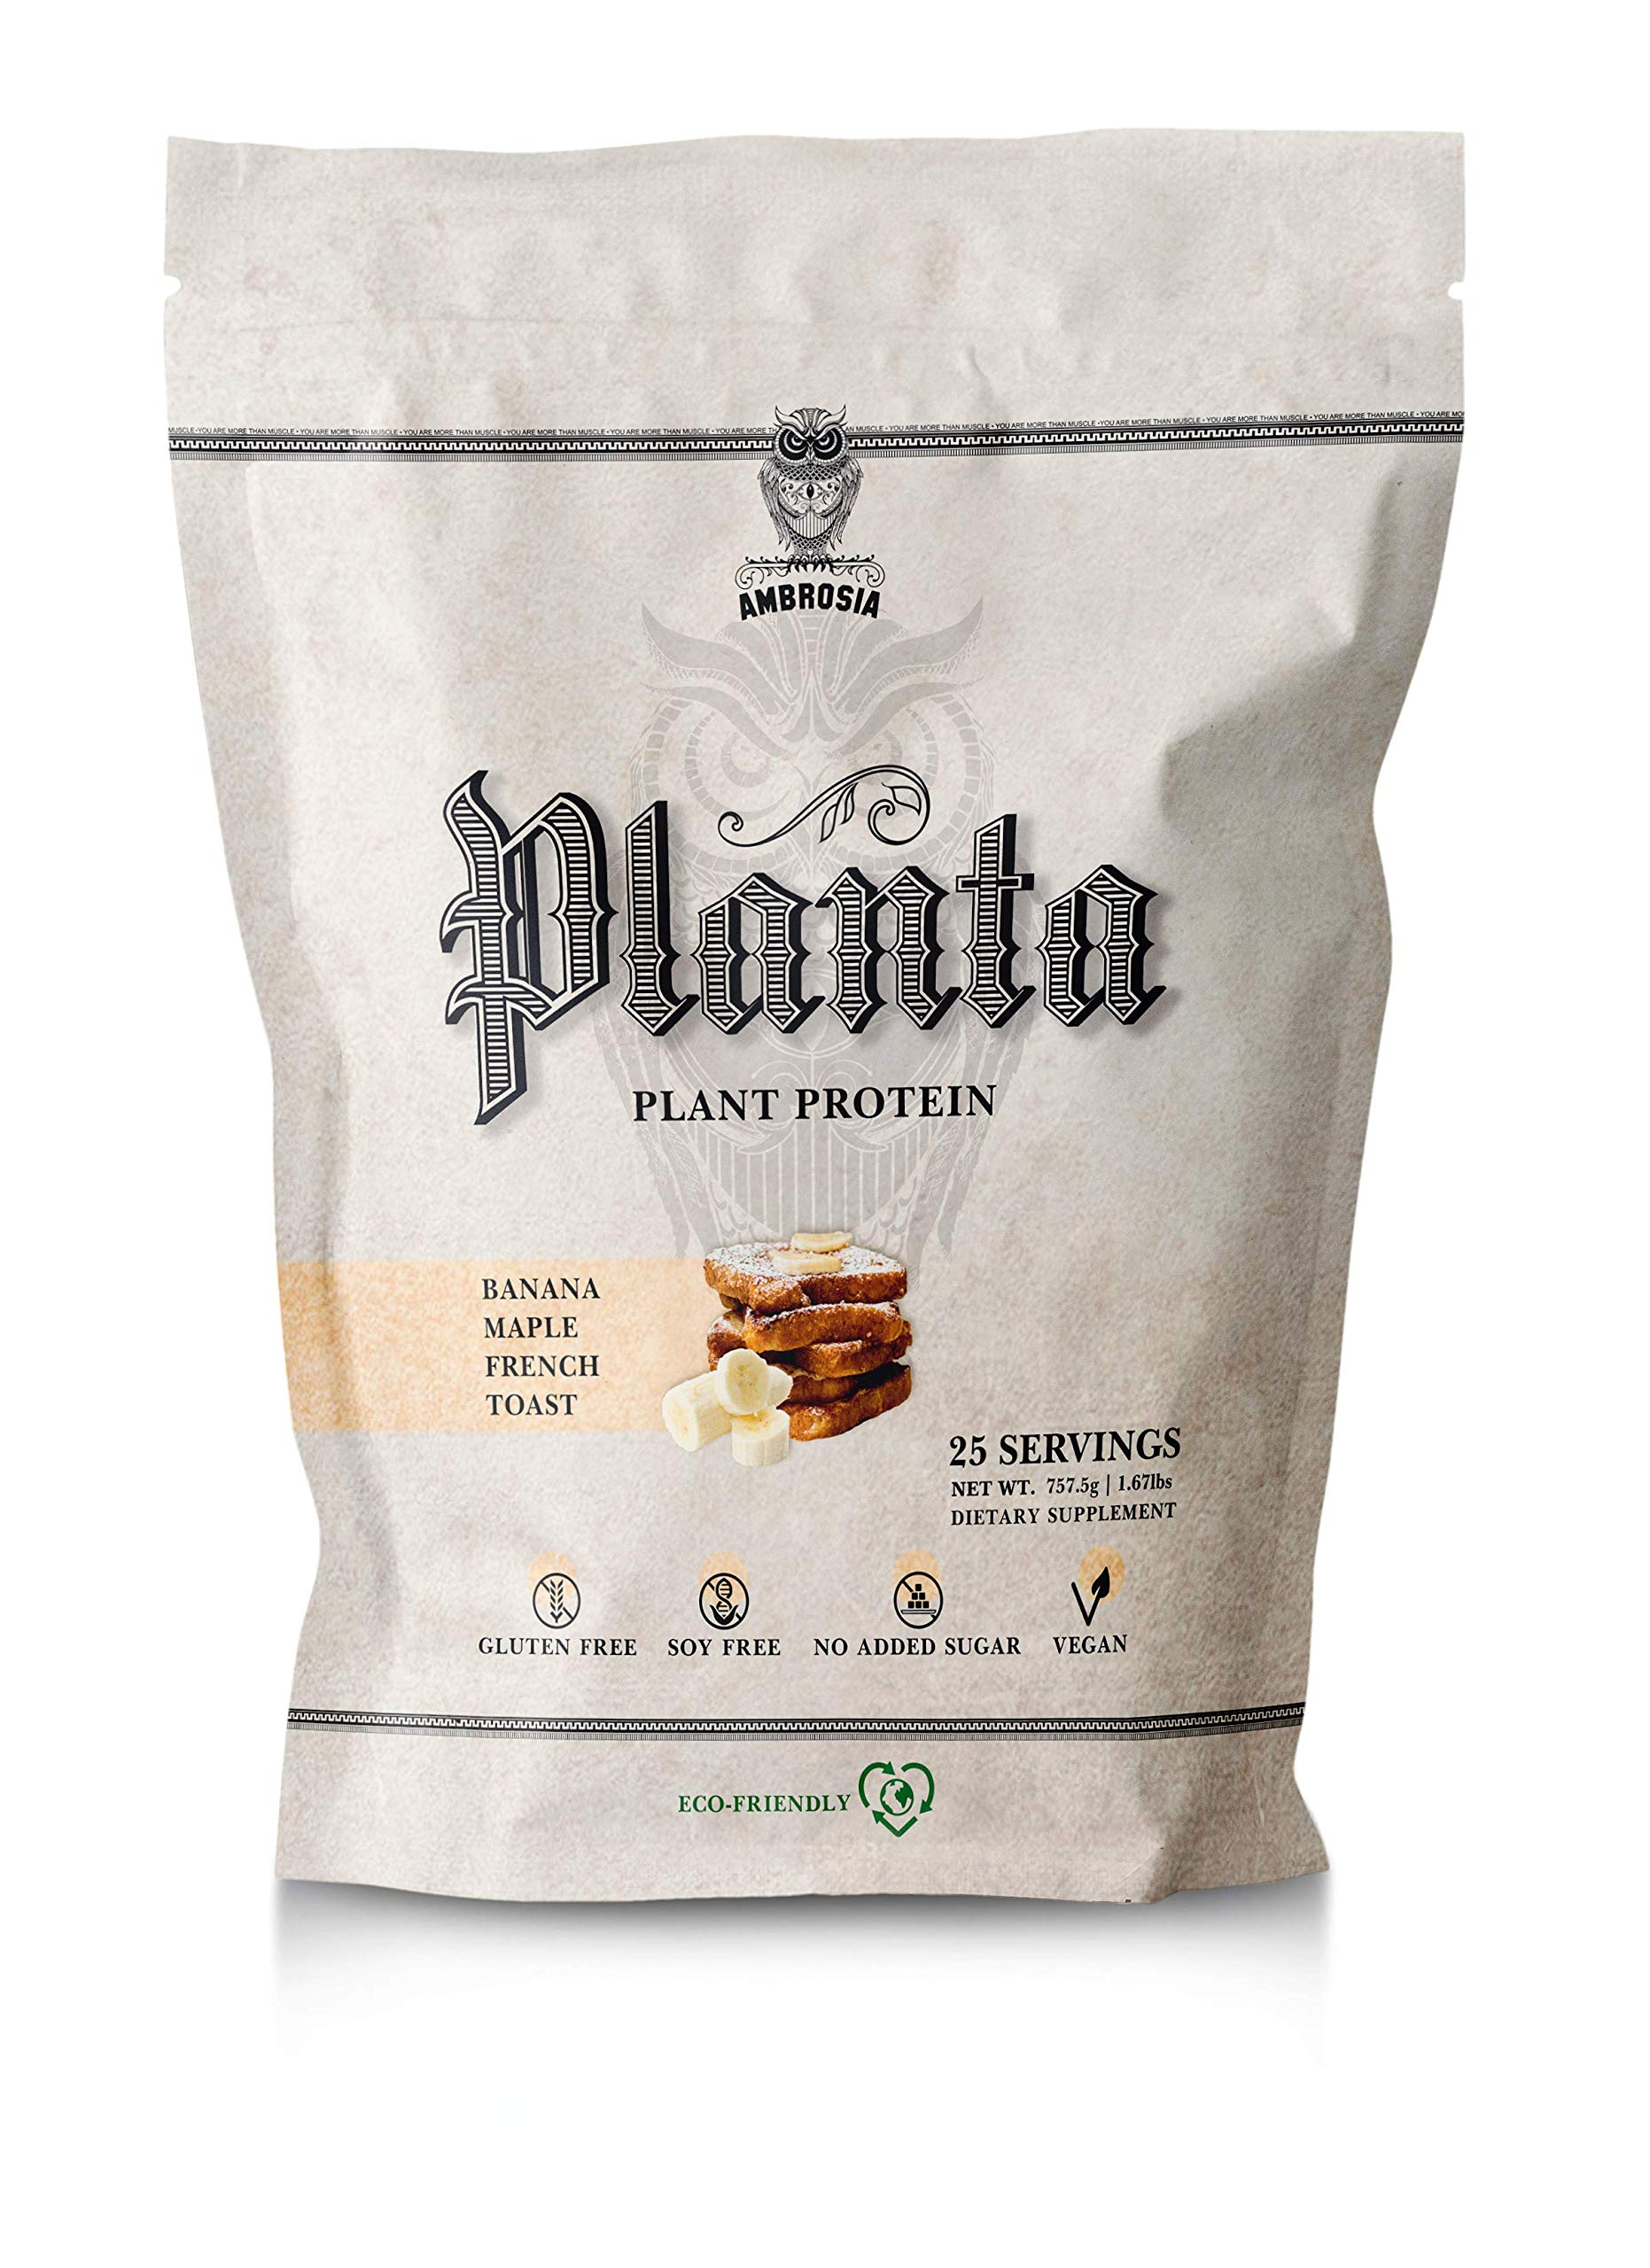 Ambrosia Planta - Premium Organic Plant-Based Protein | Vegan & Keto Friendly | Gourmet Flavors with No Bloating or Stomach Upset | Gluten & Soy Free | No Added Sugar | 25 Servings | Banana Maple by Ambrosia